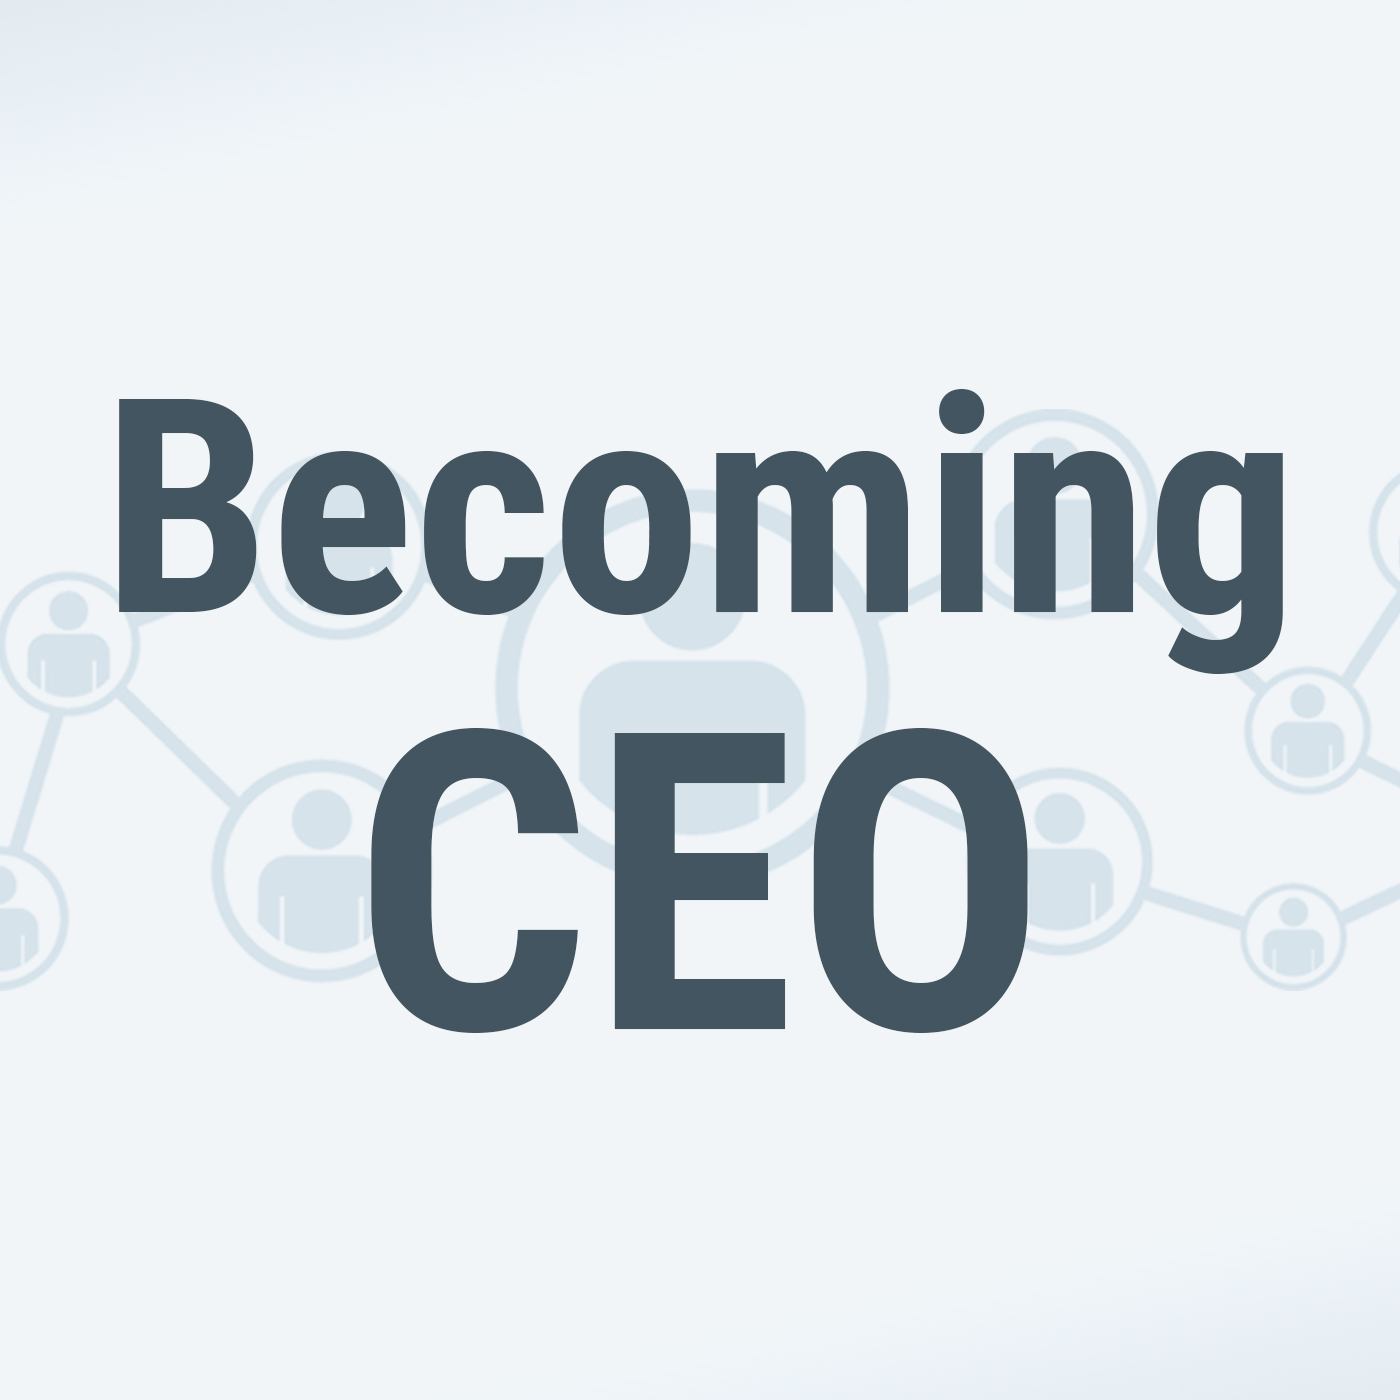 Becoming CEO